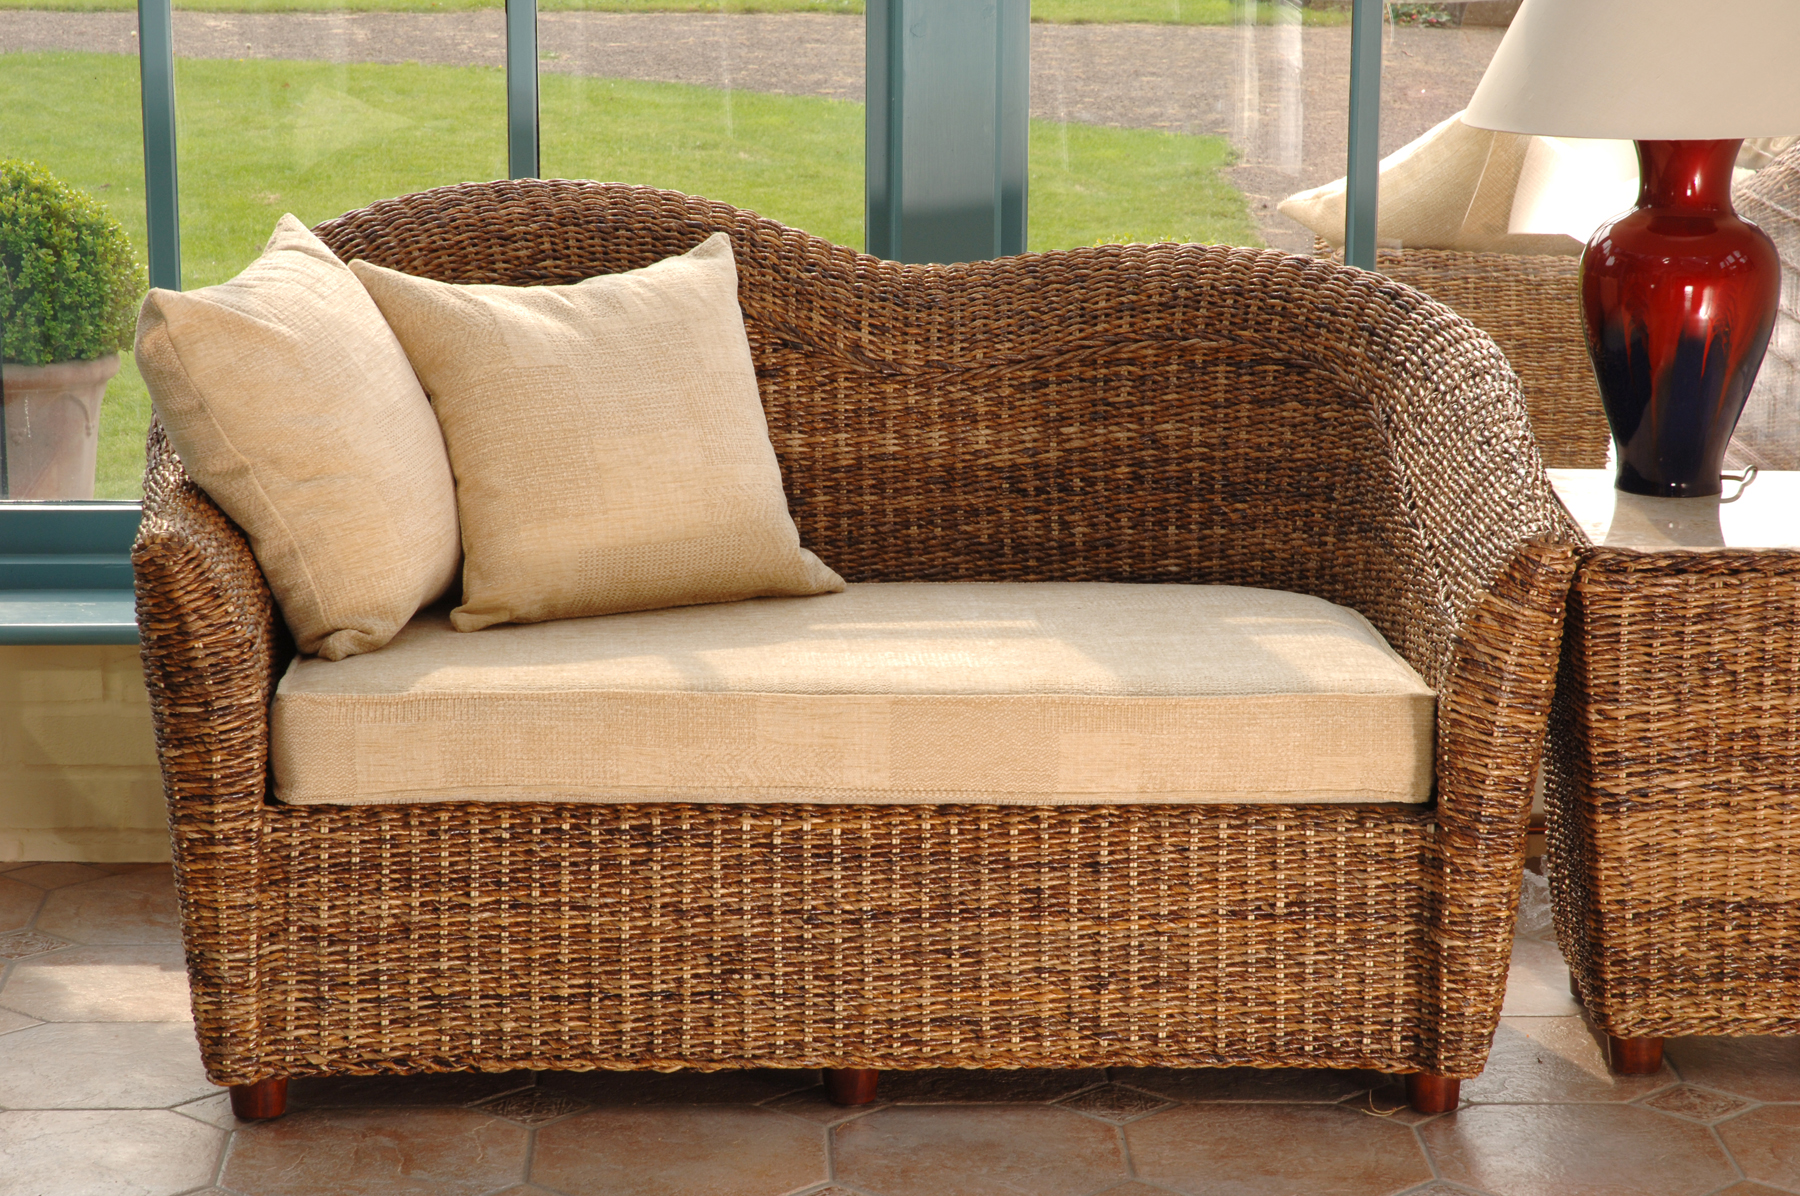 Cane conservatory furniture banana leaf furniture cane for Bamboo furniture uk